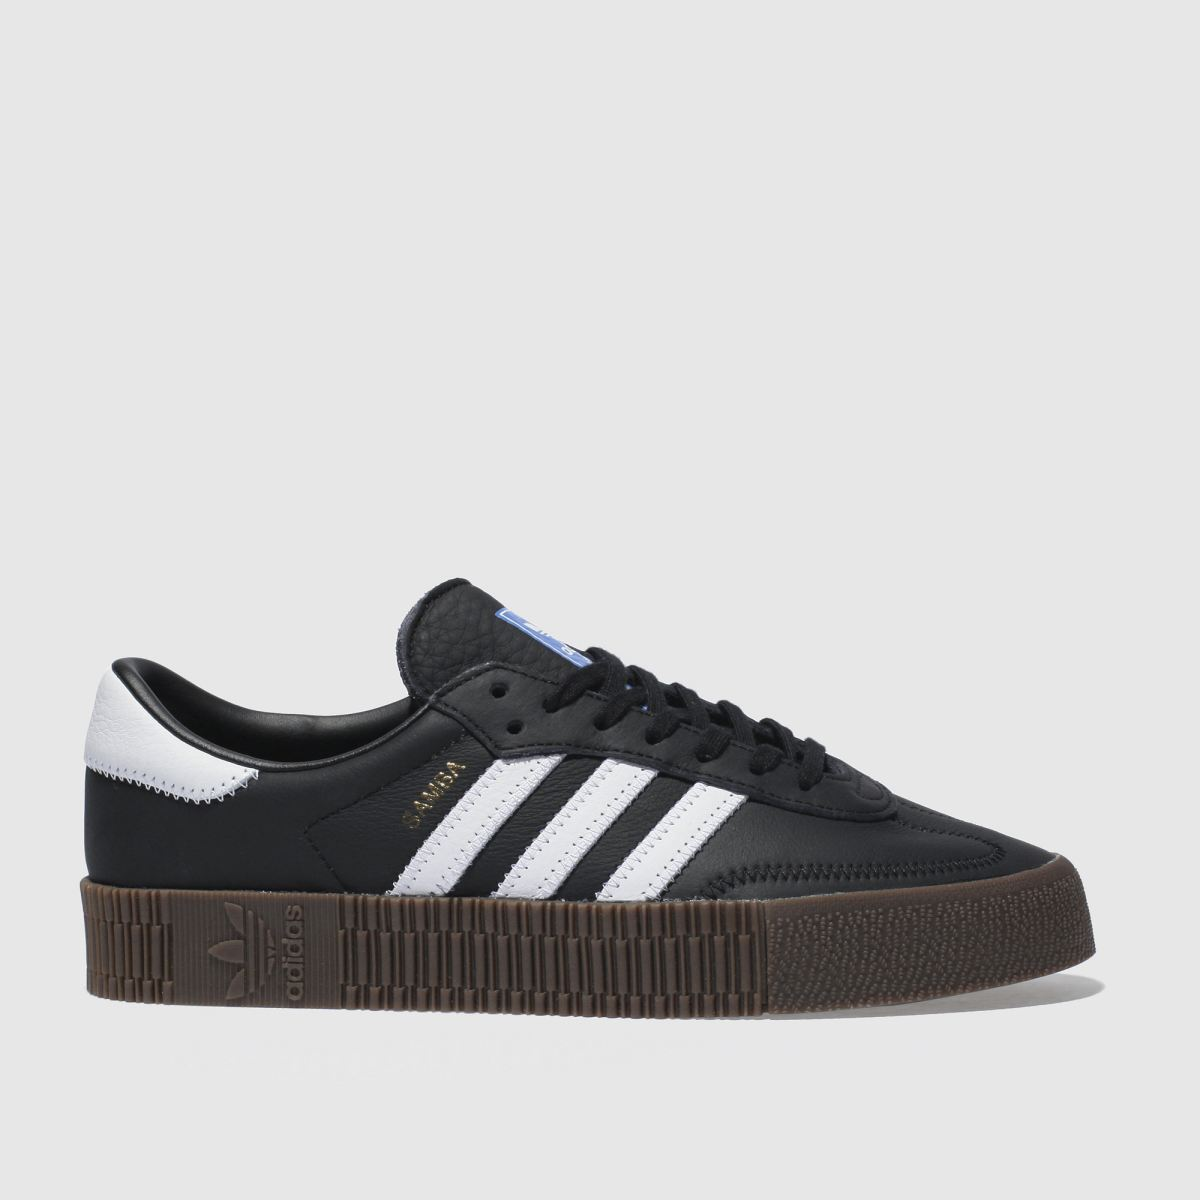 Adidas Black & White Sambarose Trainers